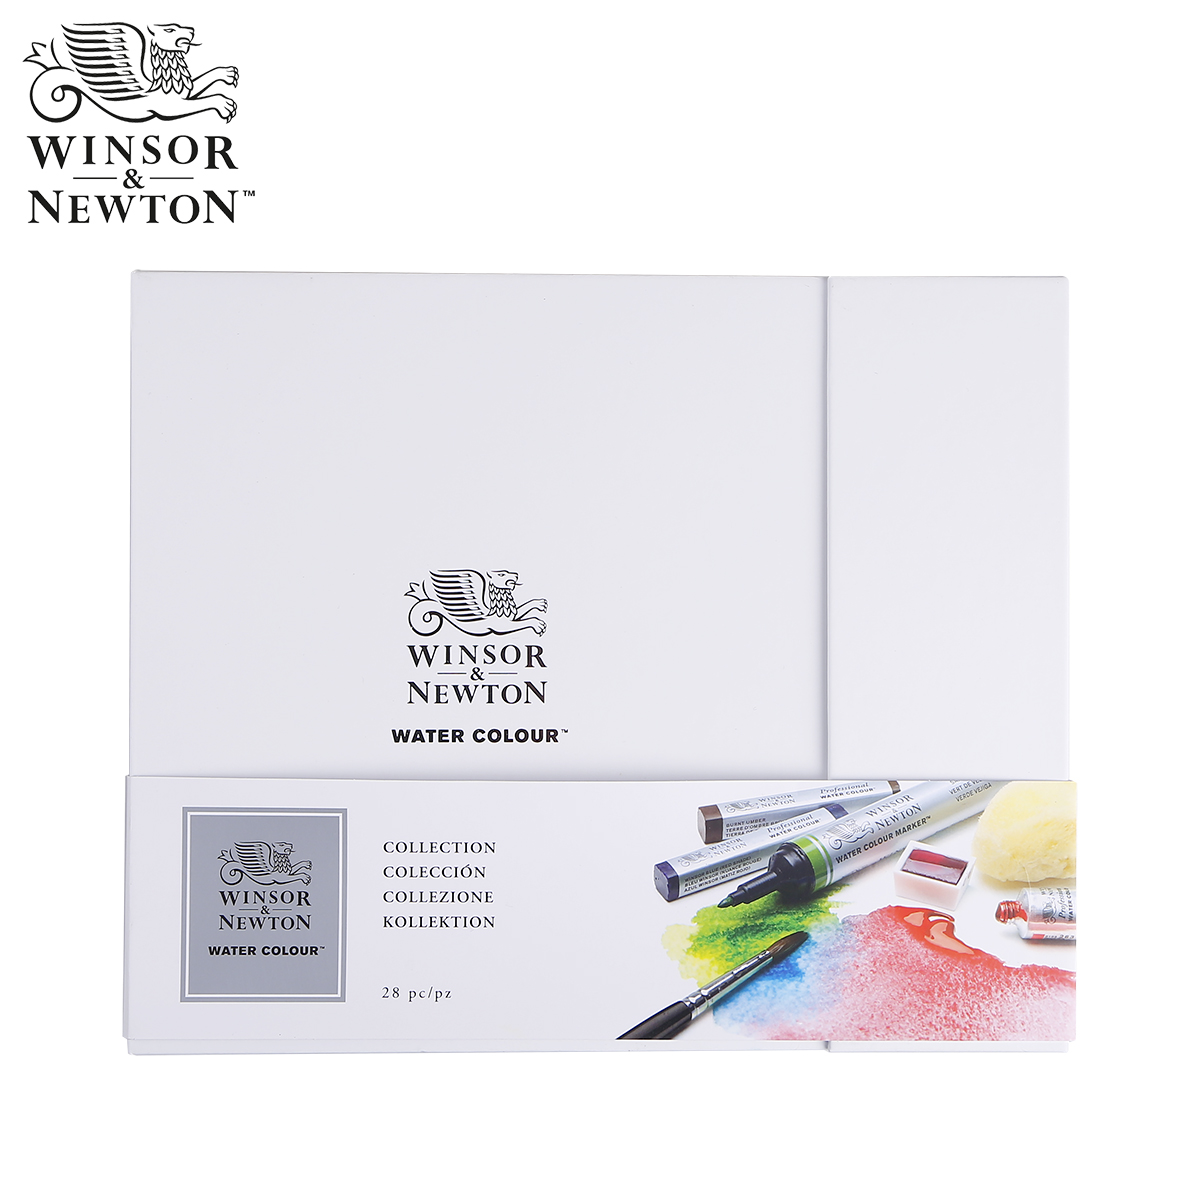 Winsor Newton luxury master kit 4 Solid watercolor rods/tube/block+ 4 watercolour Marker pen+10 arches paper combination set kitcyo588750pac103637 value kit crayola pip squeaks telescoping marker tower cyo588750 and pacon riverside construction paper pac103637